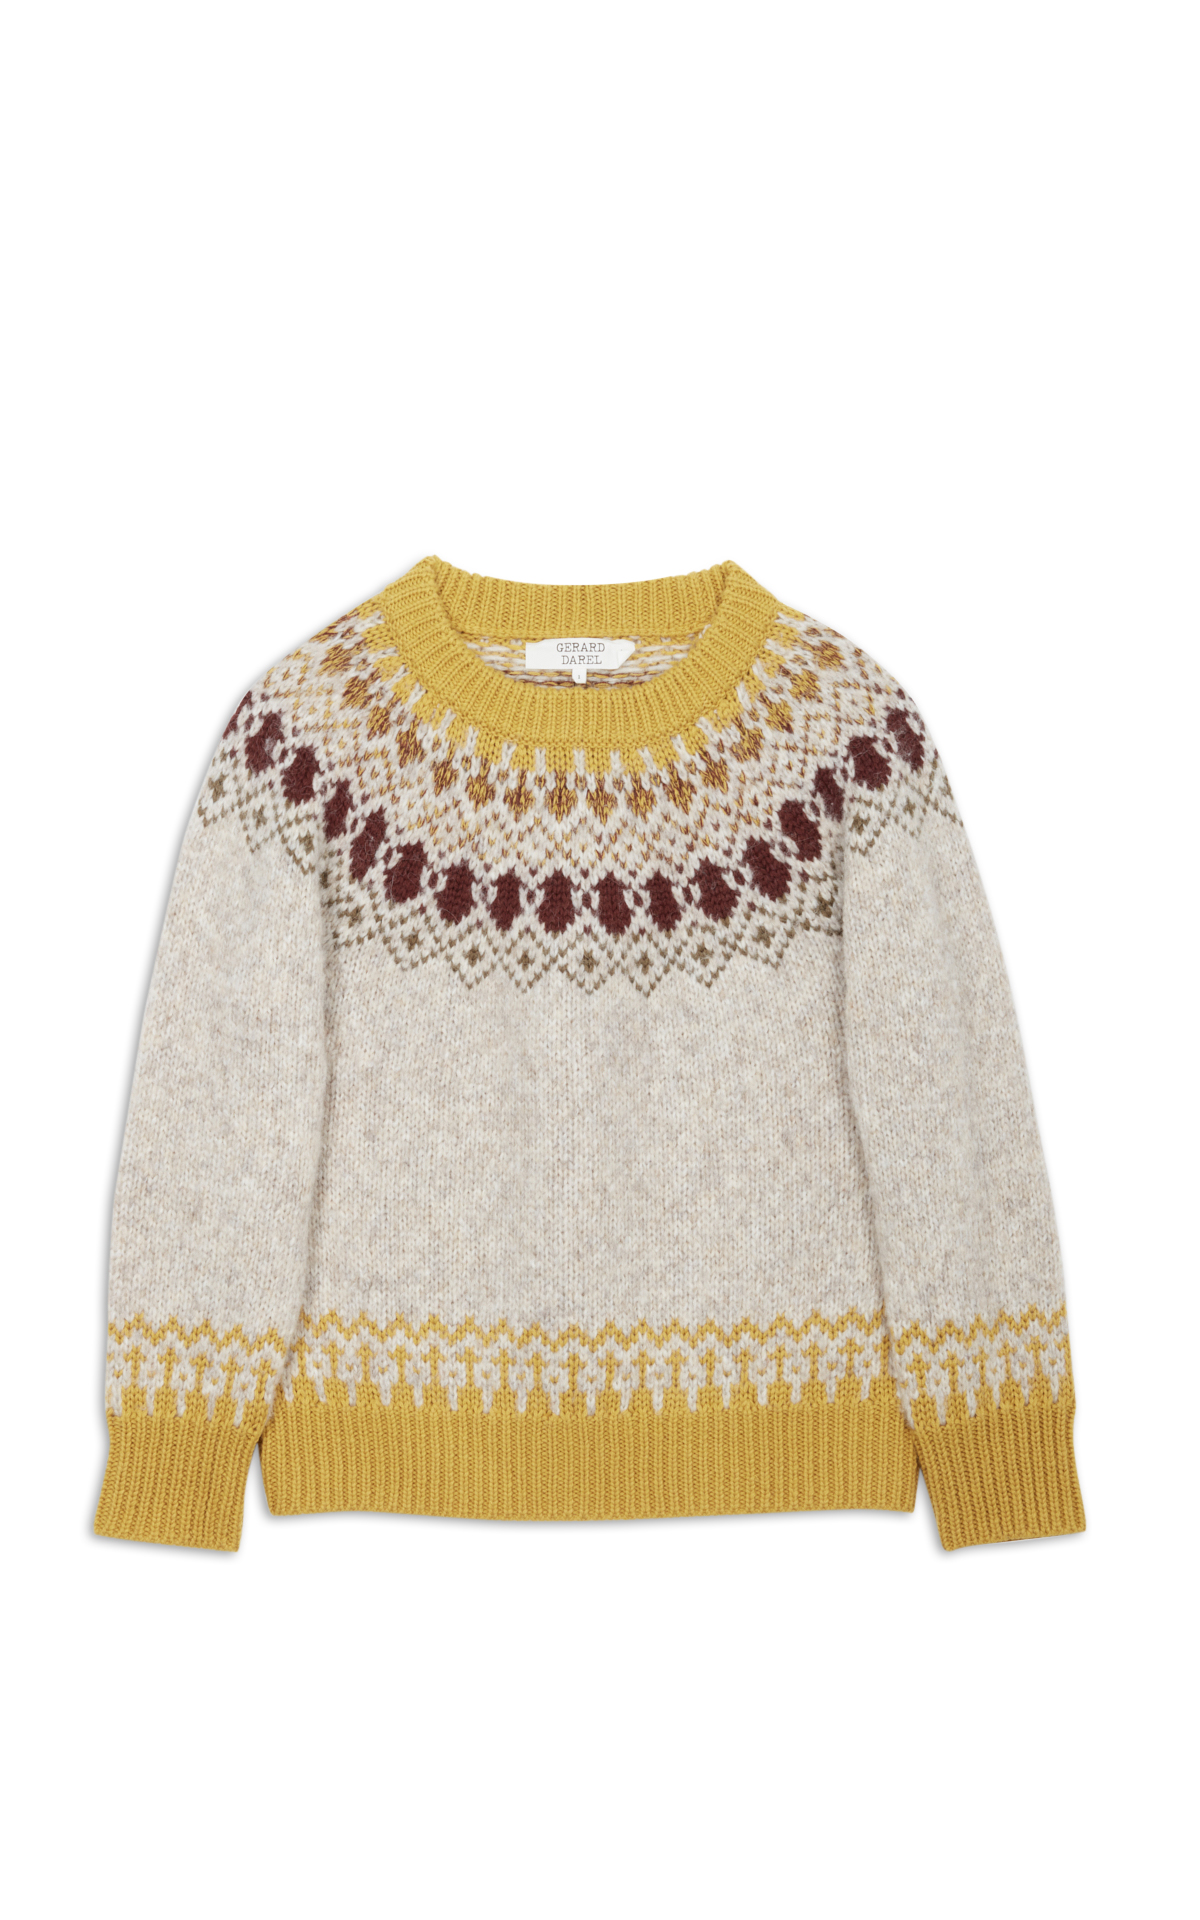 Gerard Darel yellow and grey patterned jumper la vallée village